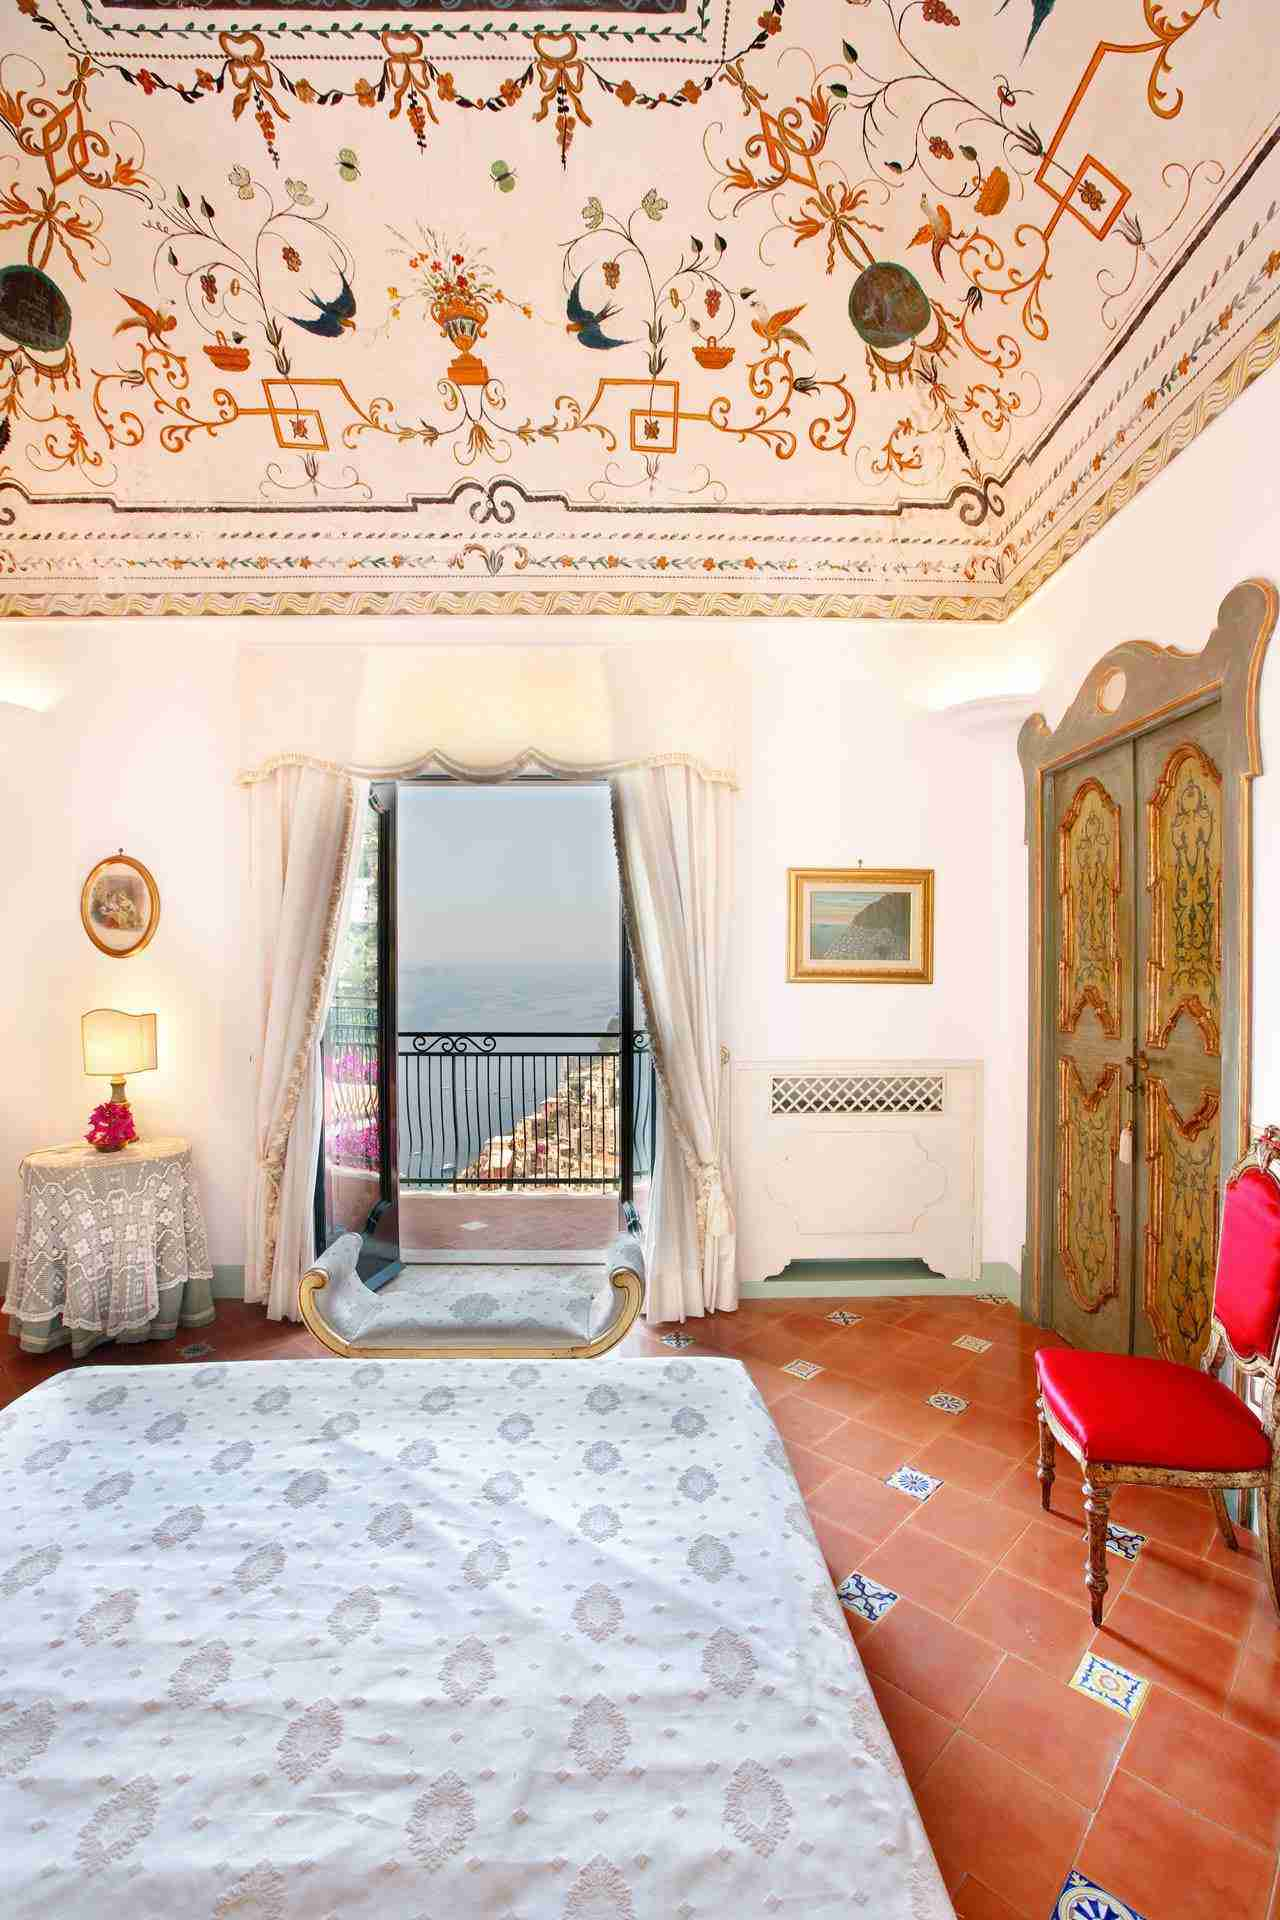 20 Positano double bedroom